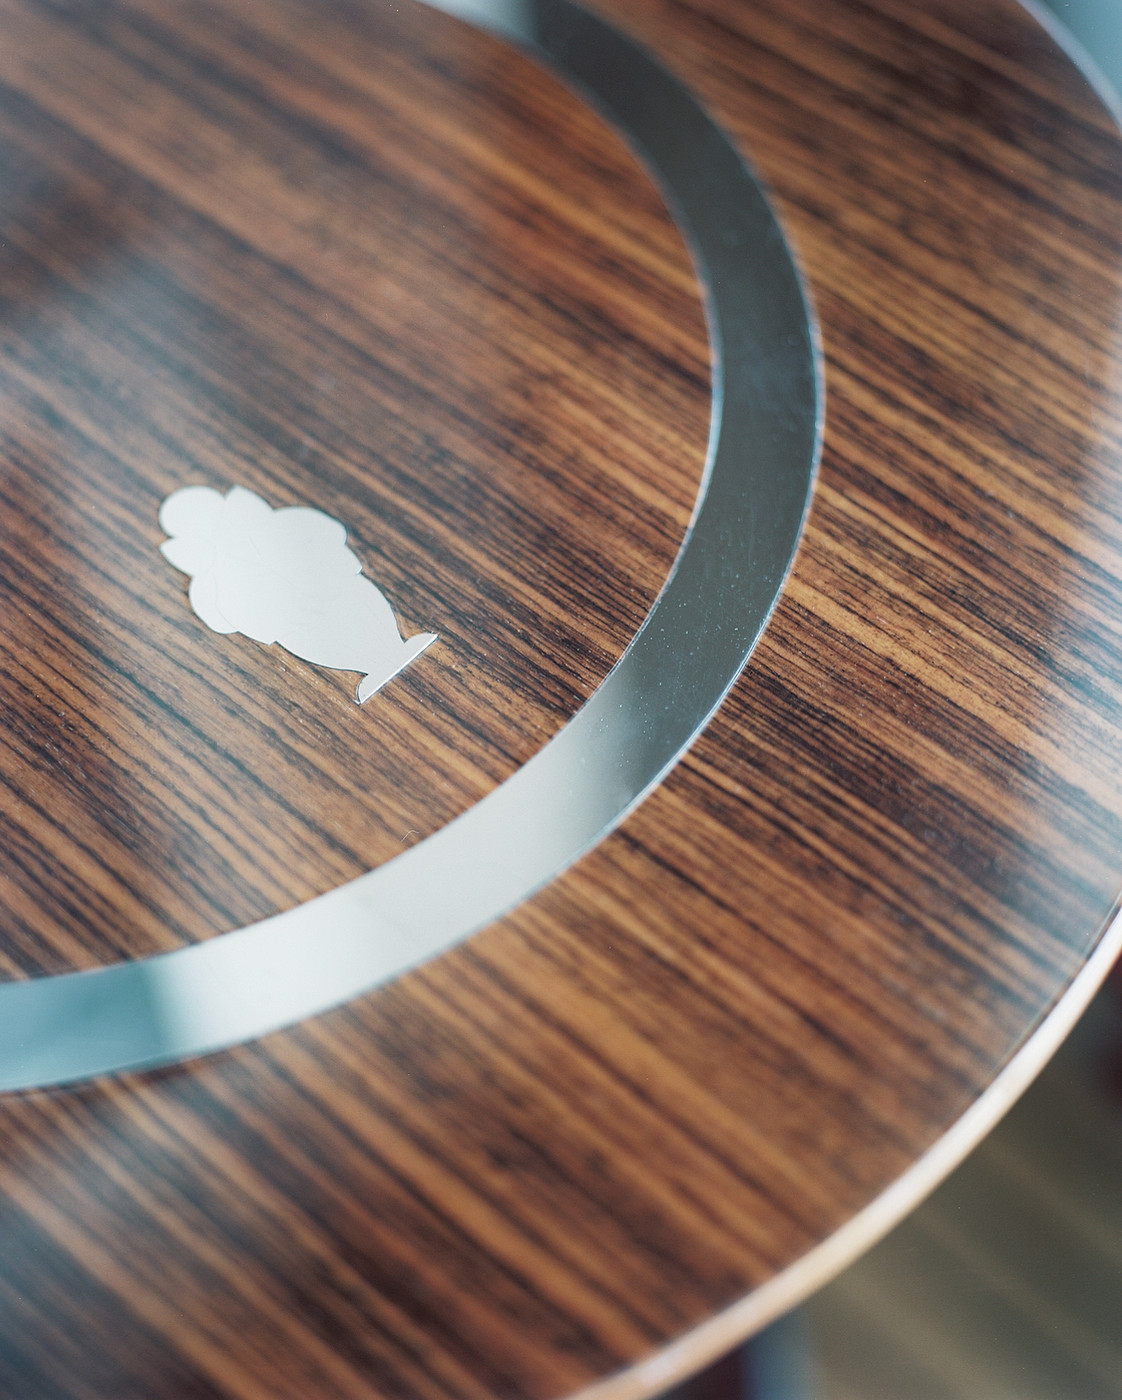 Metal Inlay Photos Design Ideas Remodel And Decor Lonny